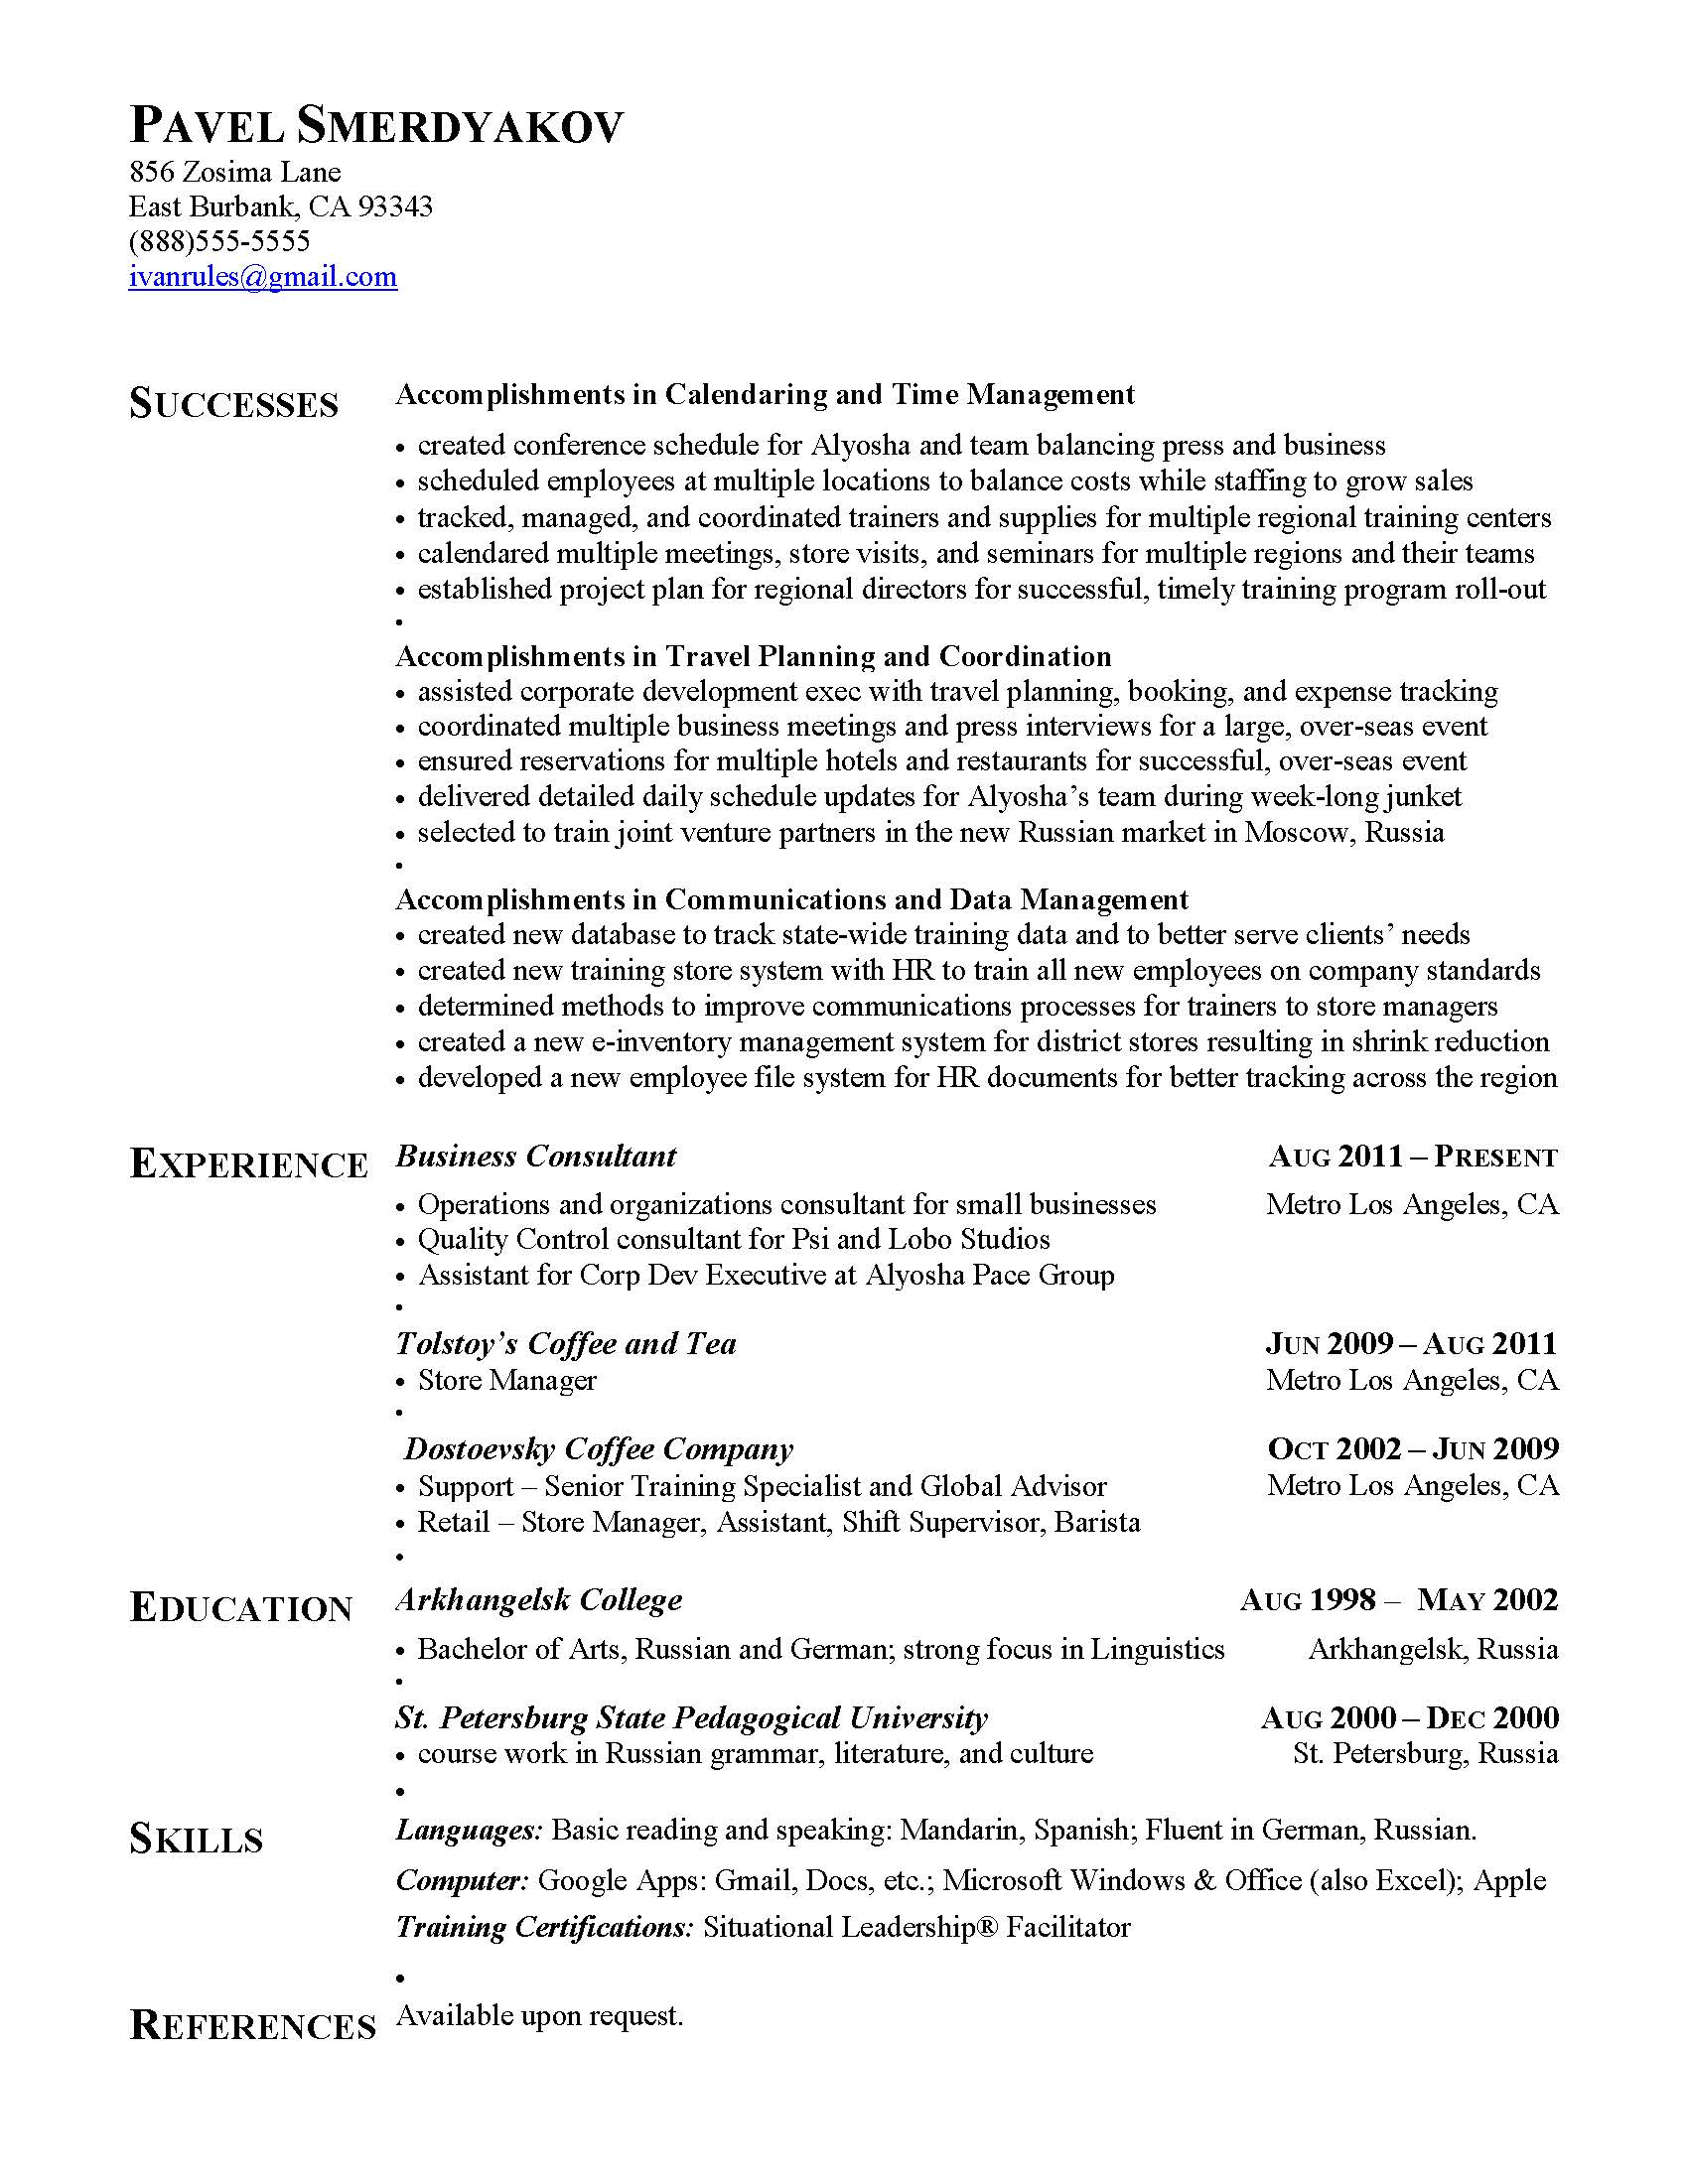 business major resume examples entry level business administration resume sample livecareer resume examples resume smerdyakov page